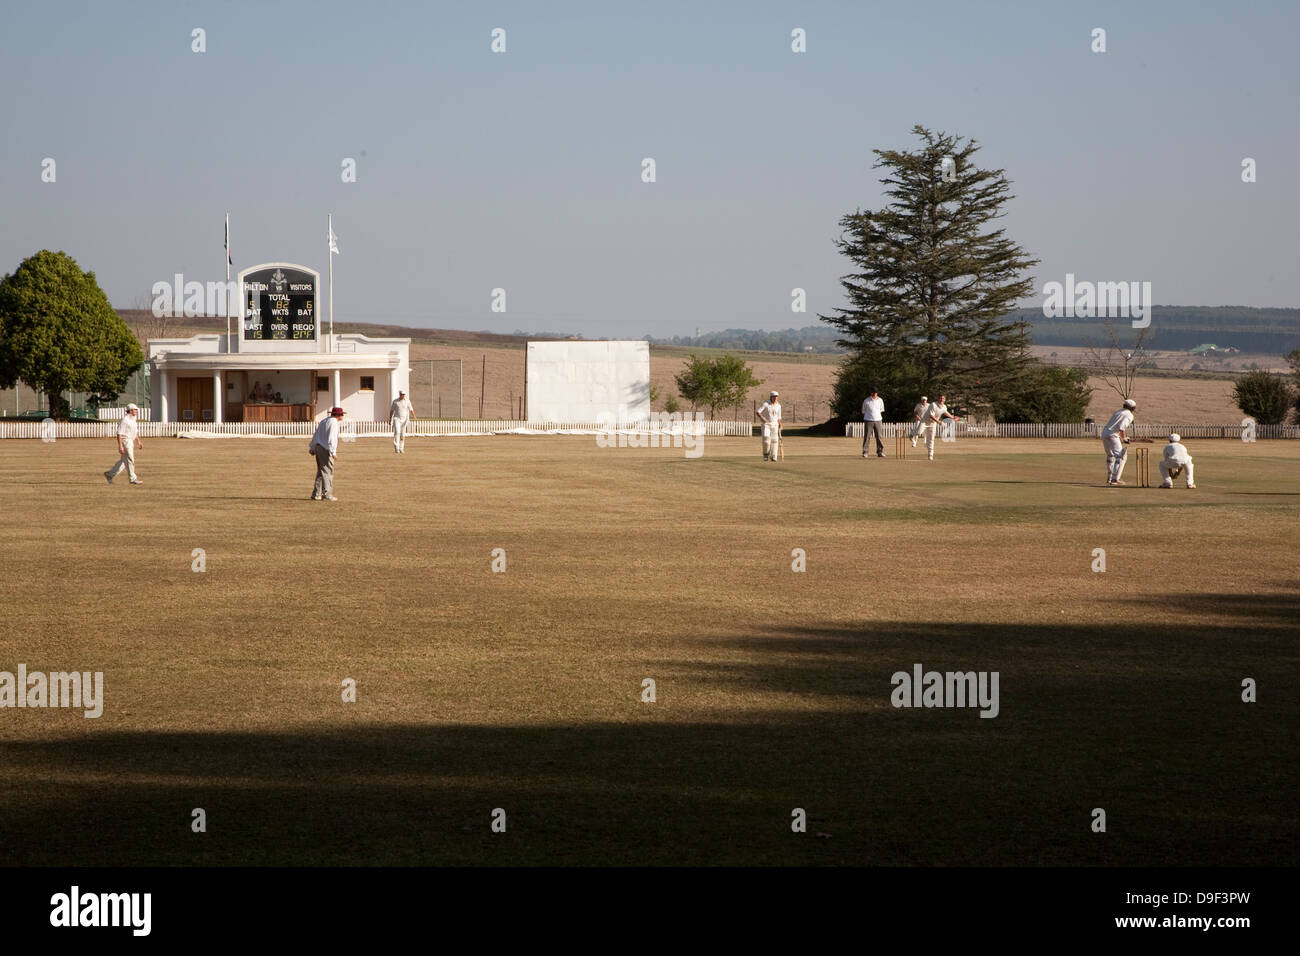 Cricket at Hilton College, Midlands, KwaZulu-Natal. The Hilton Old Boys were taking on the Hilton College First Stock Photo